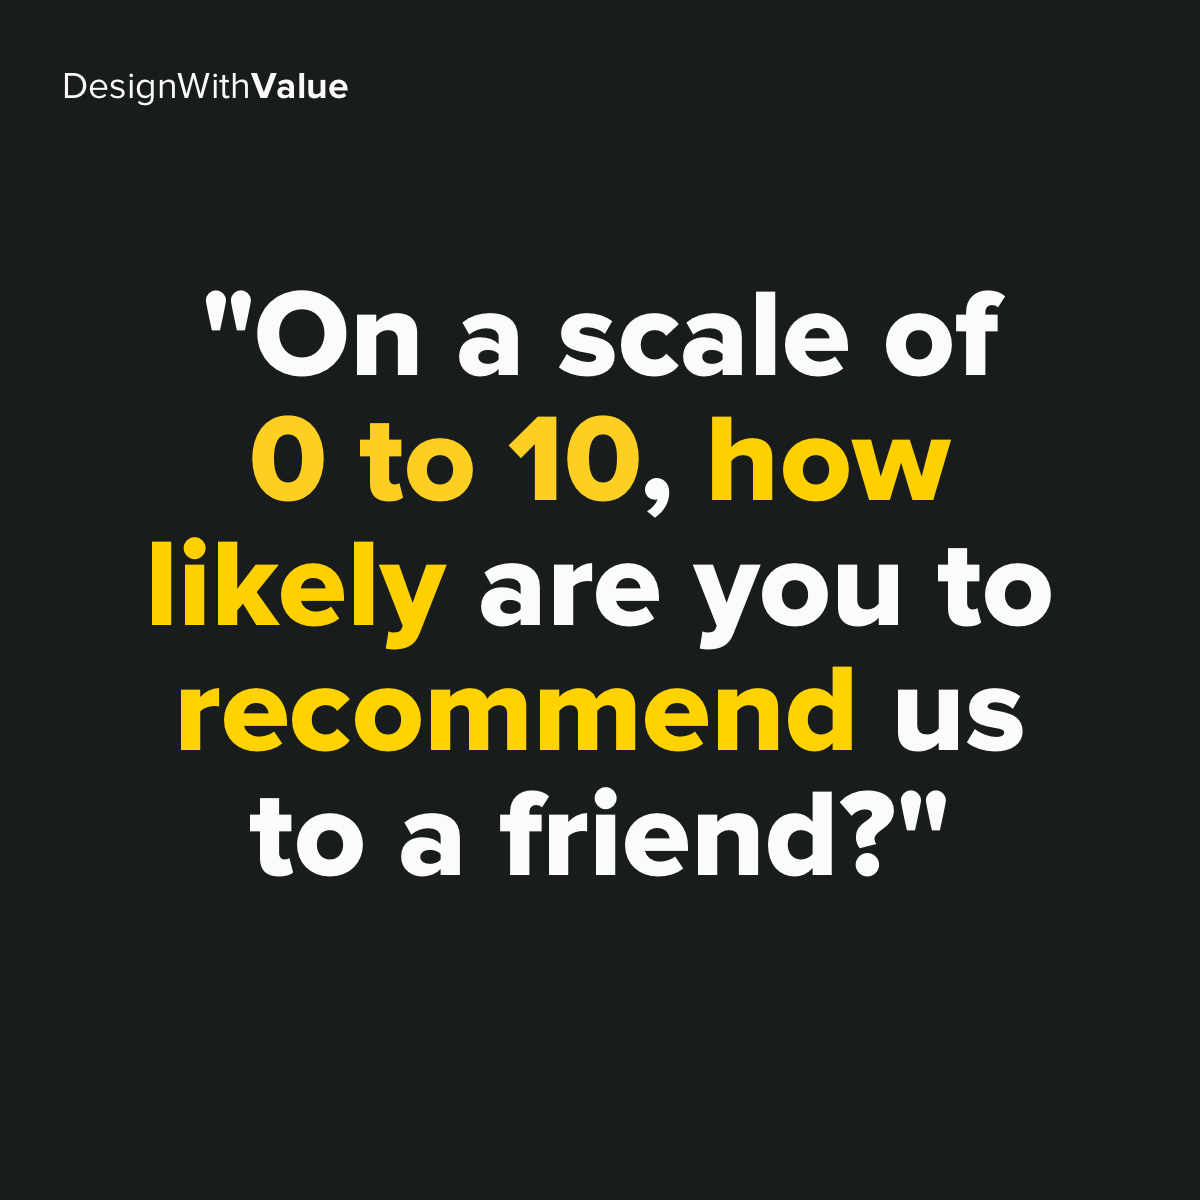 """On a scale of 0 to 10 how likely are you to recommend us to a friend?"""